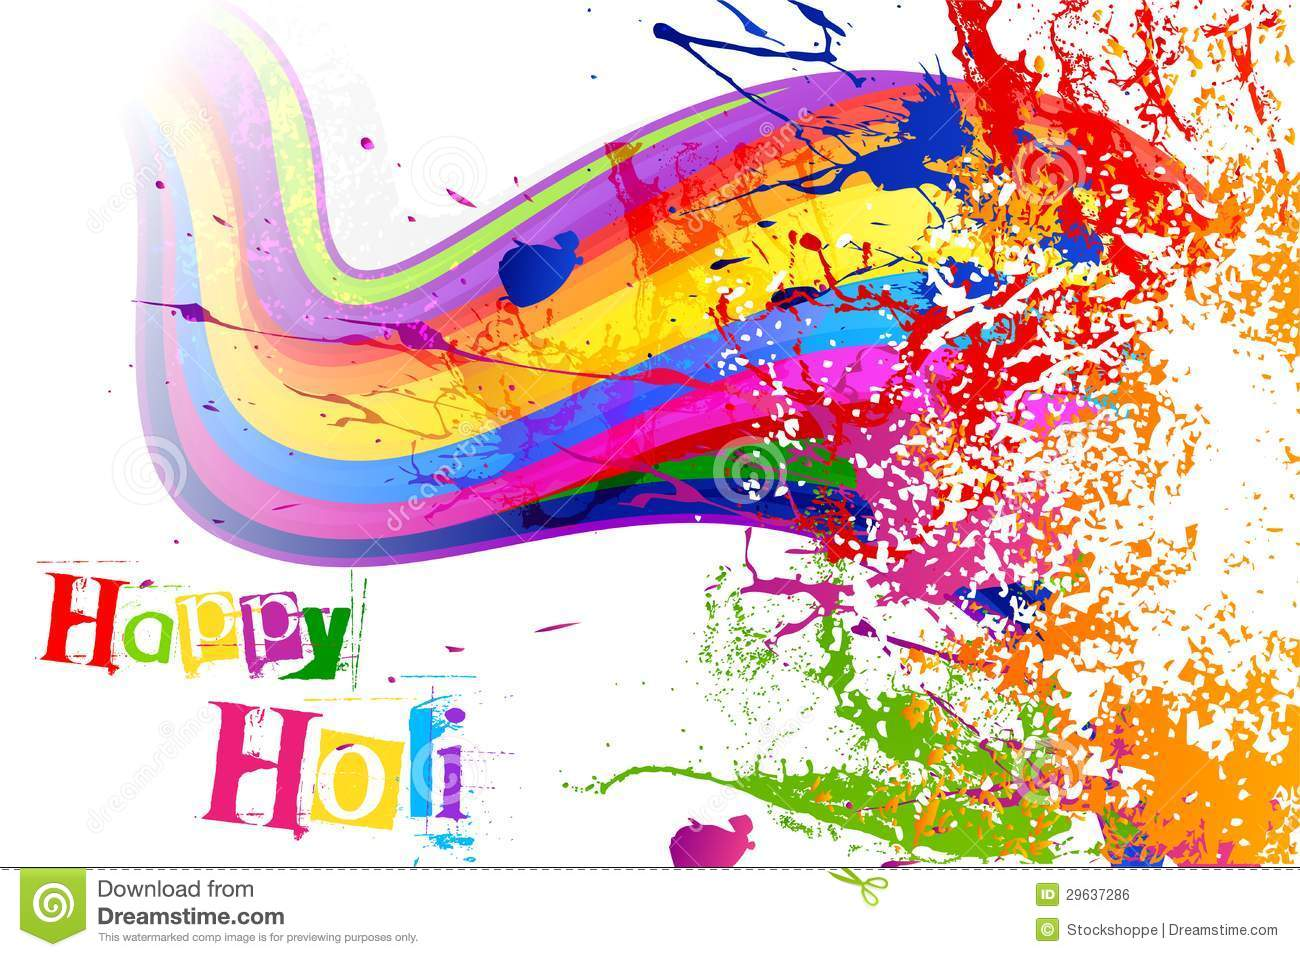 an experience with holi a hindu festivity Holi, along with many other hindu festivals, is celebrated in nepal as a national festival it is an important major nepal-wide festival along with dashain and tihar  it is celebrated in the nepali month of phagun (same date as indian holi), and signifies the legends of the hindu god krishna.